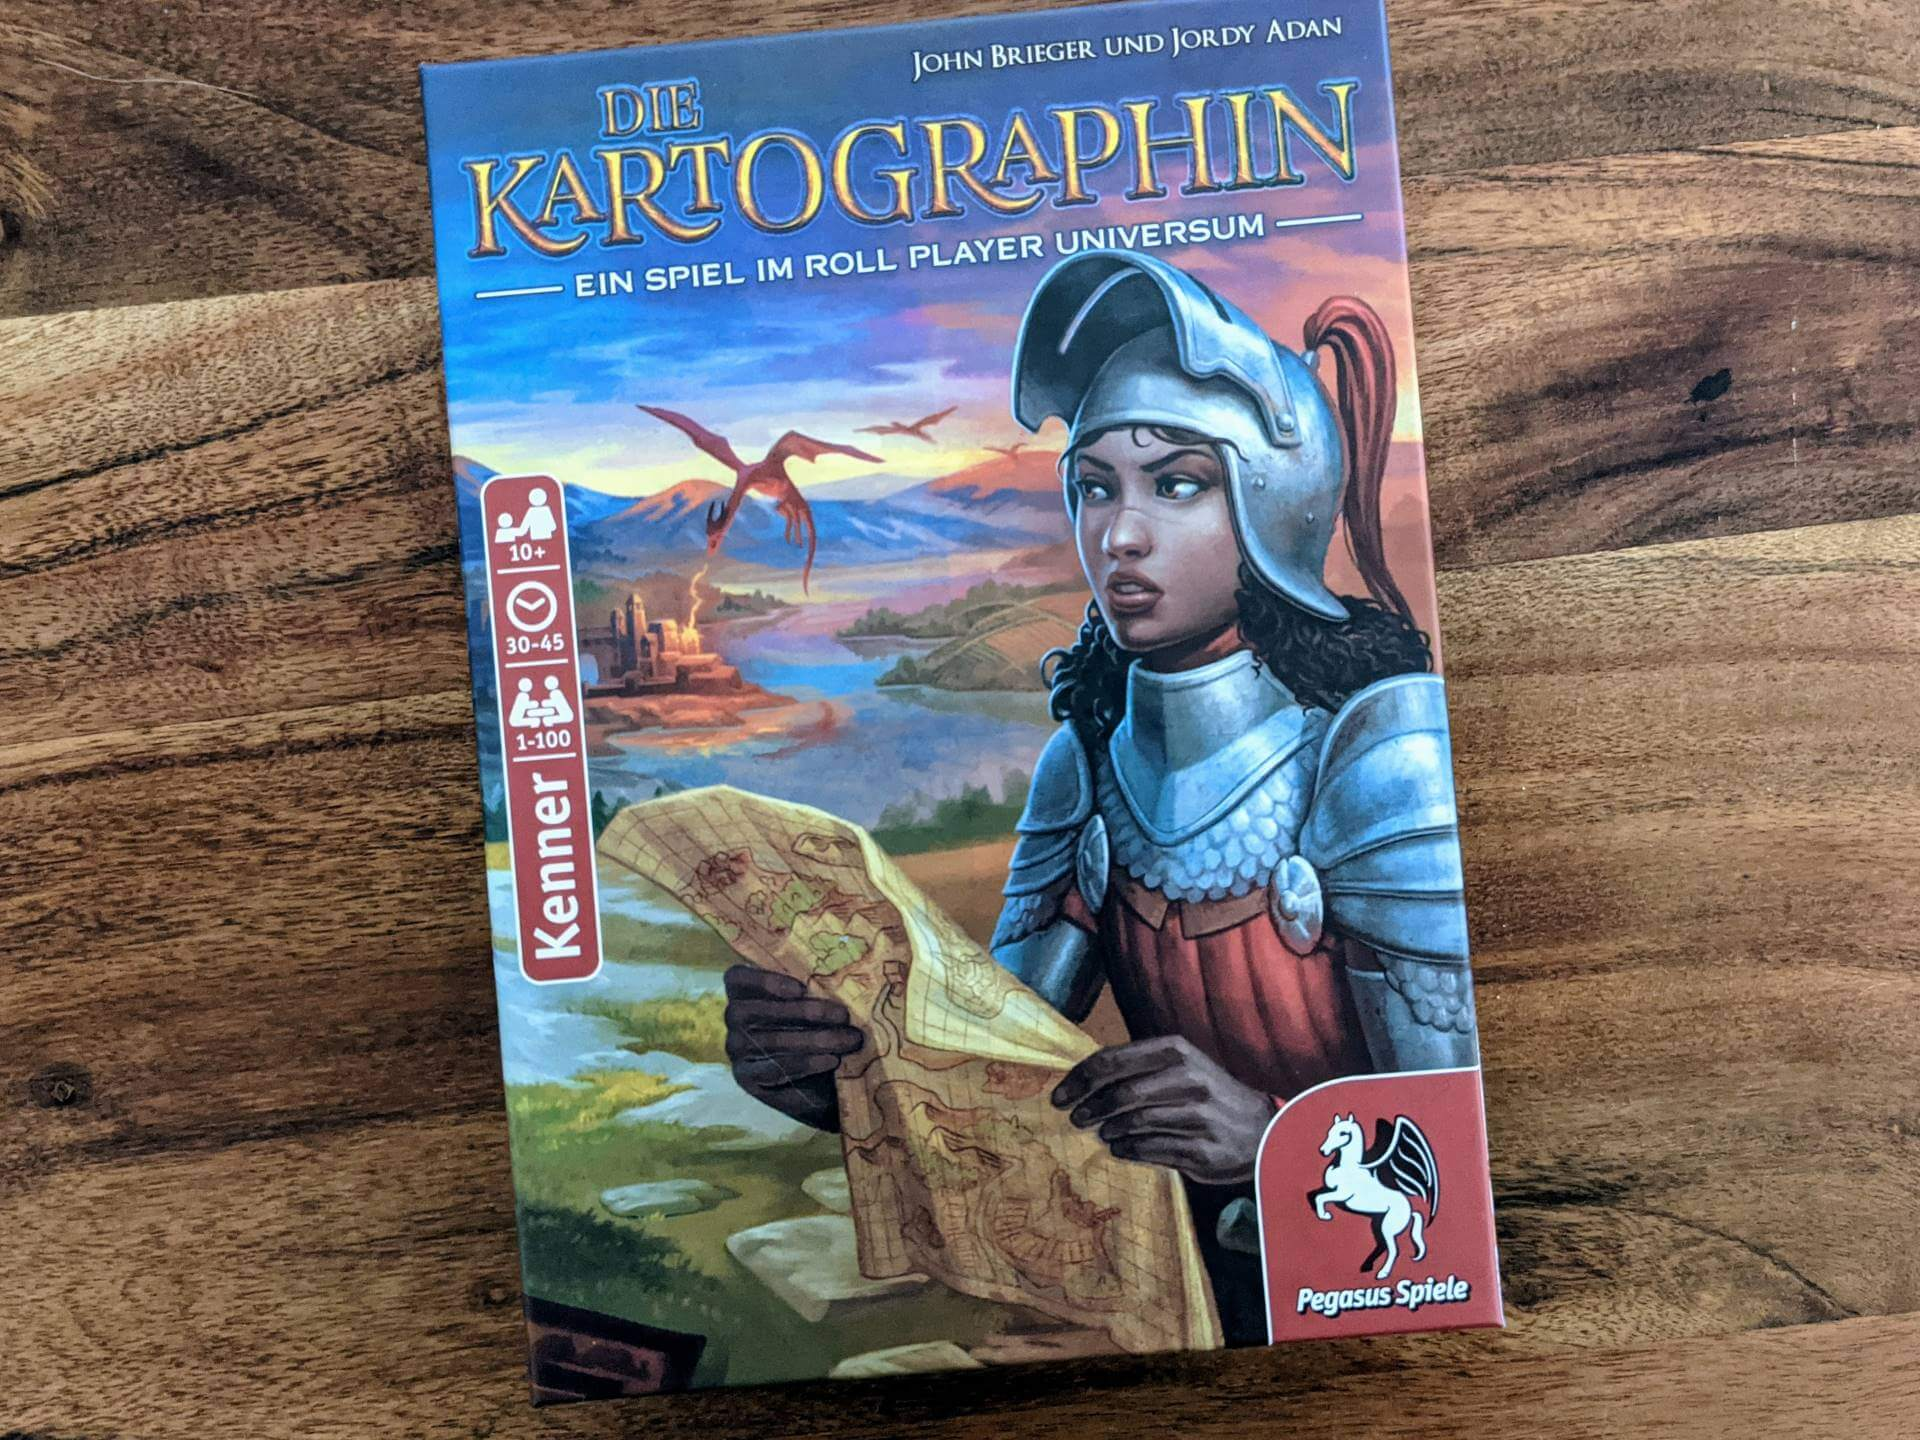 Die Kartographin Review